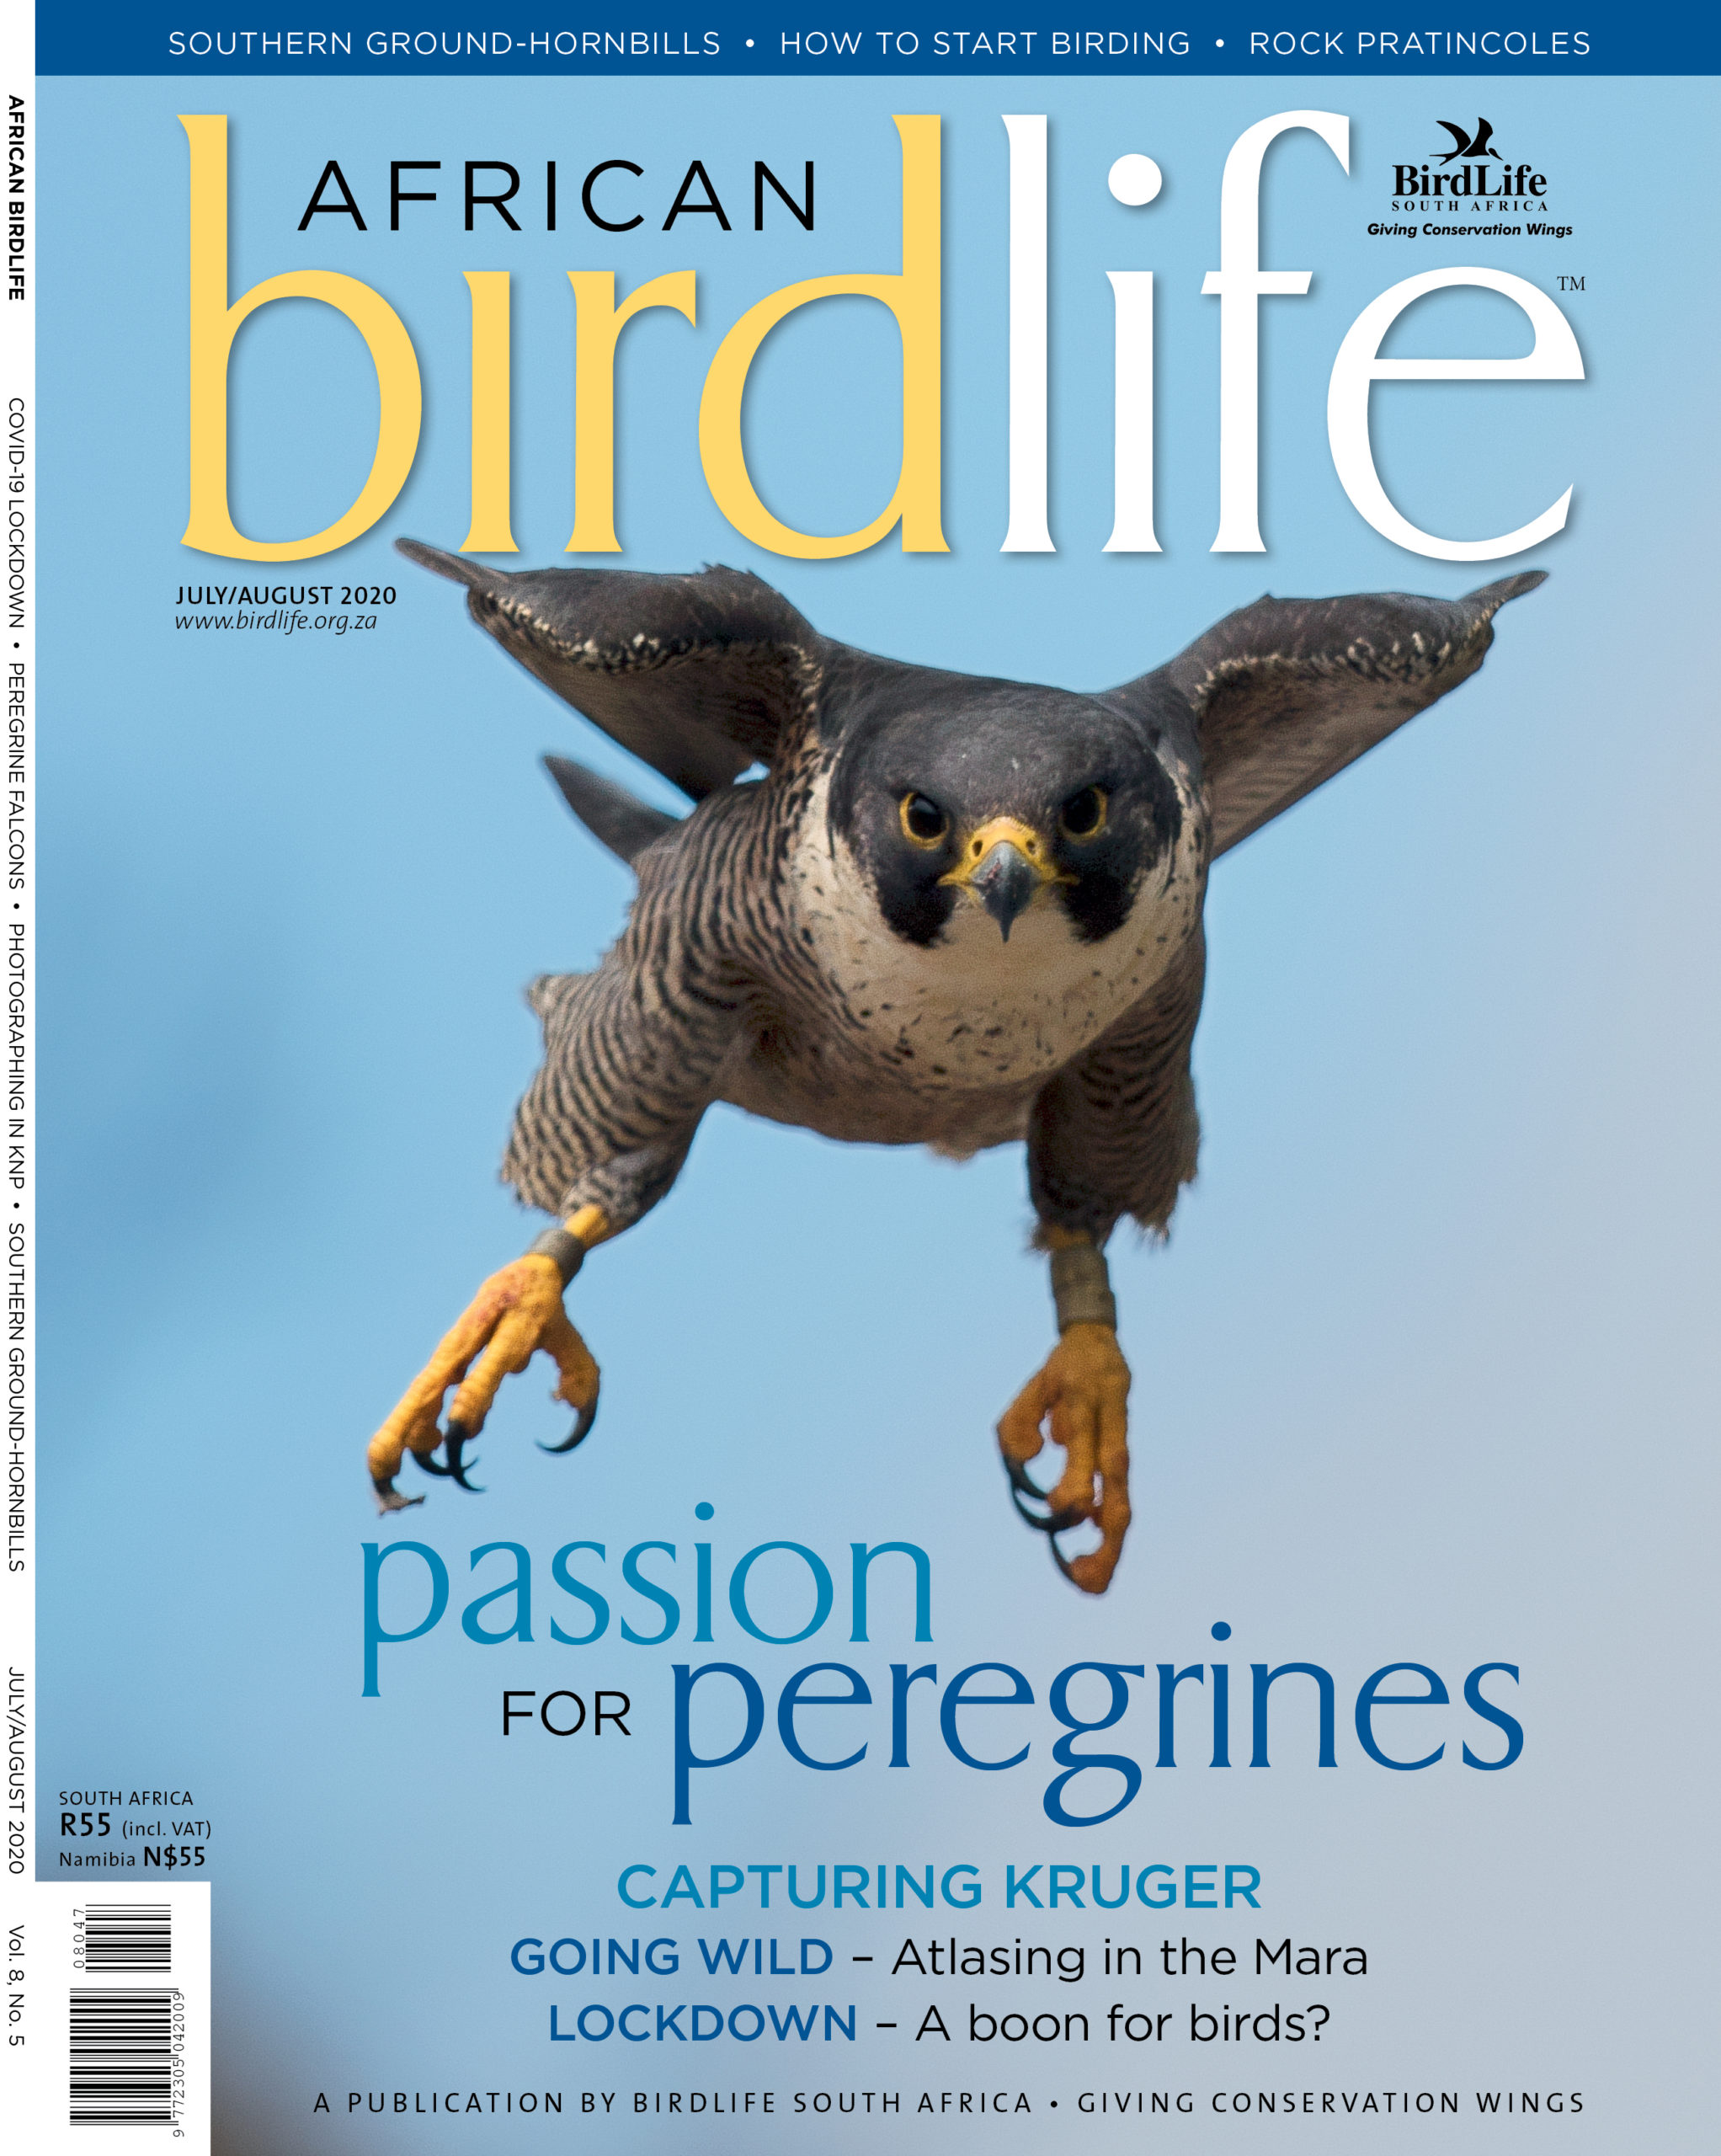 African Birdlife Jul / Aug 2020